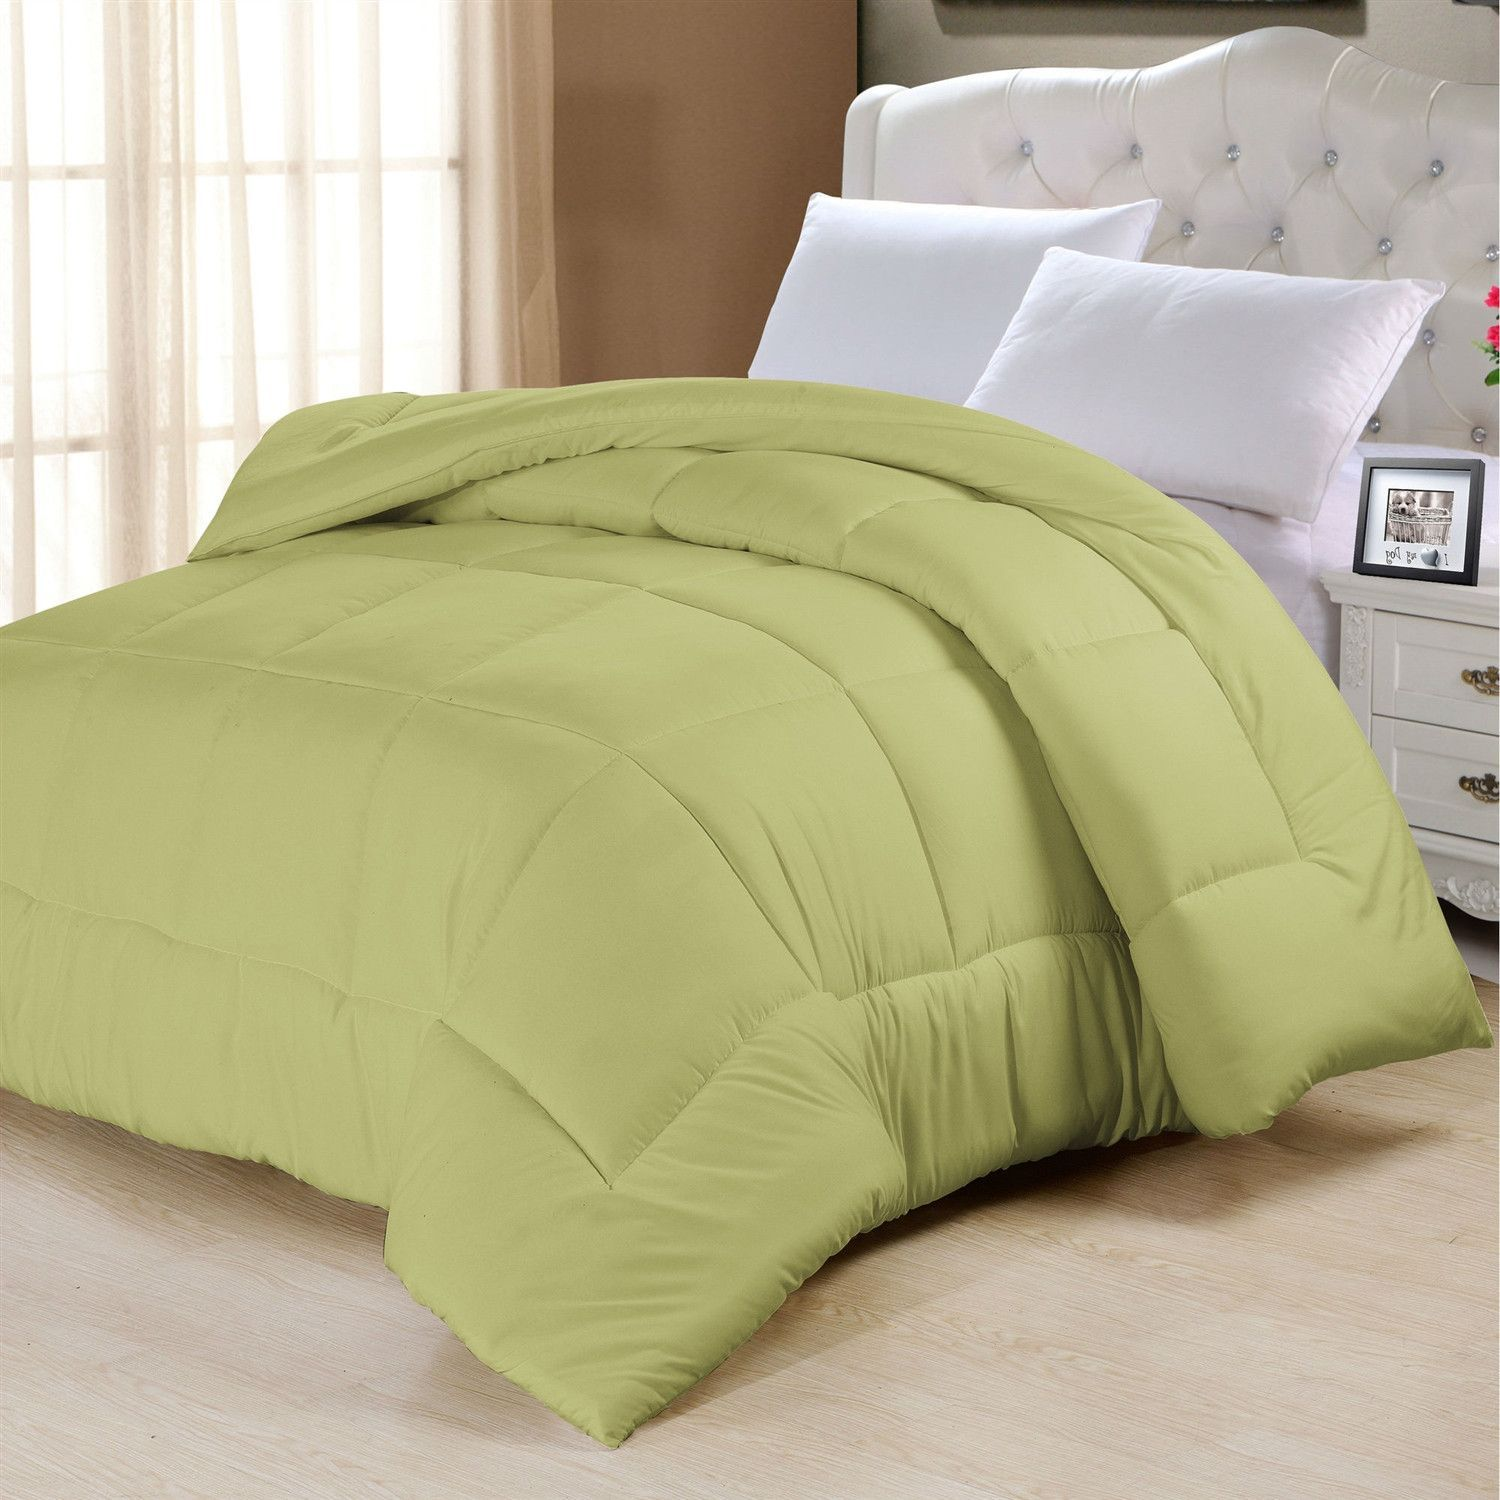 Full Size forter in Solid Sage Green Yellow Microfiber